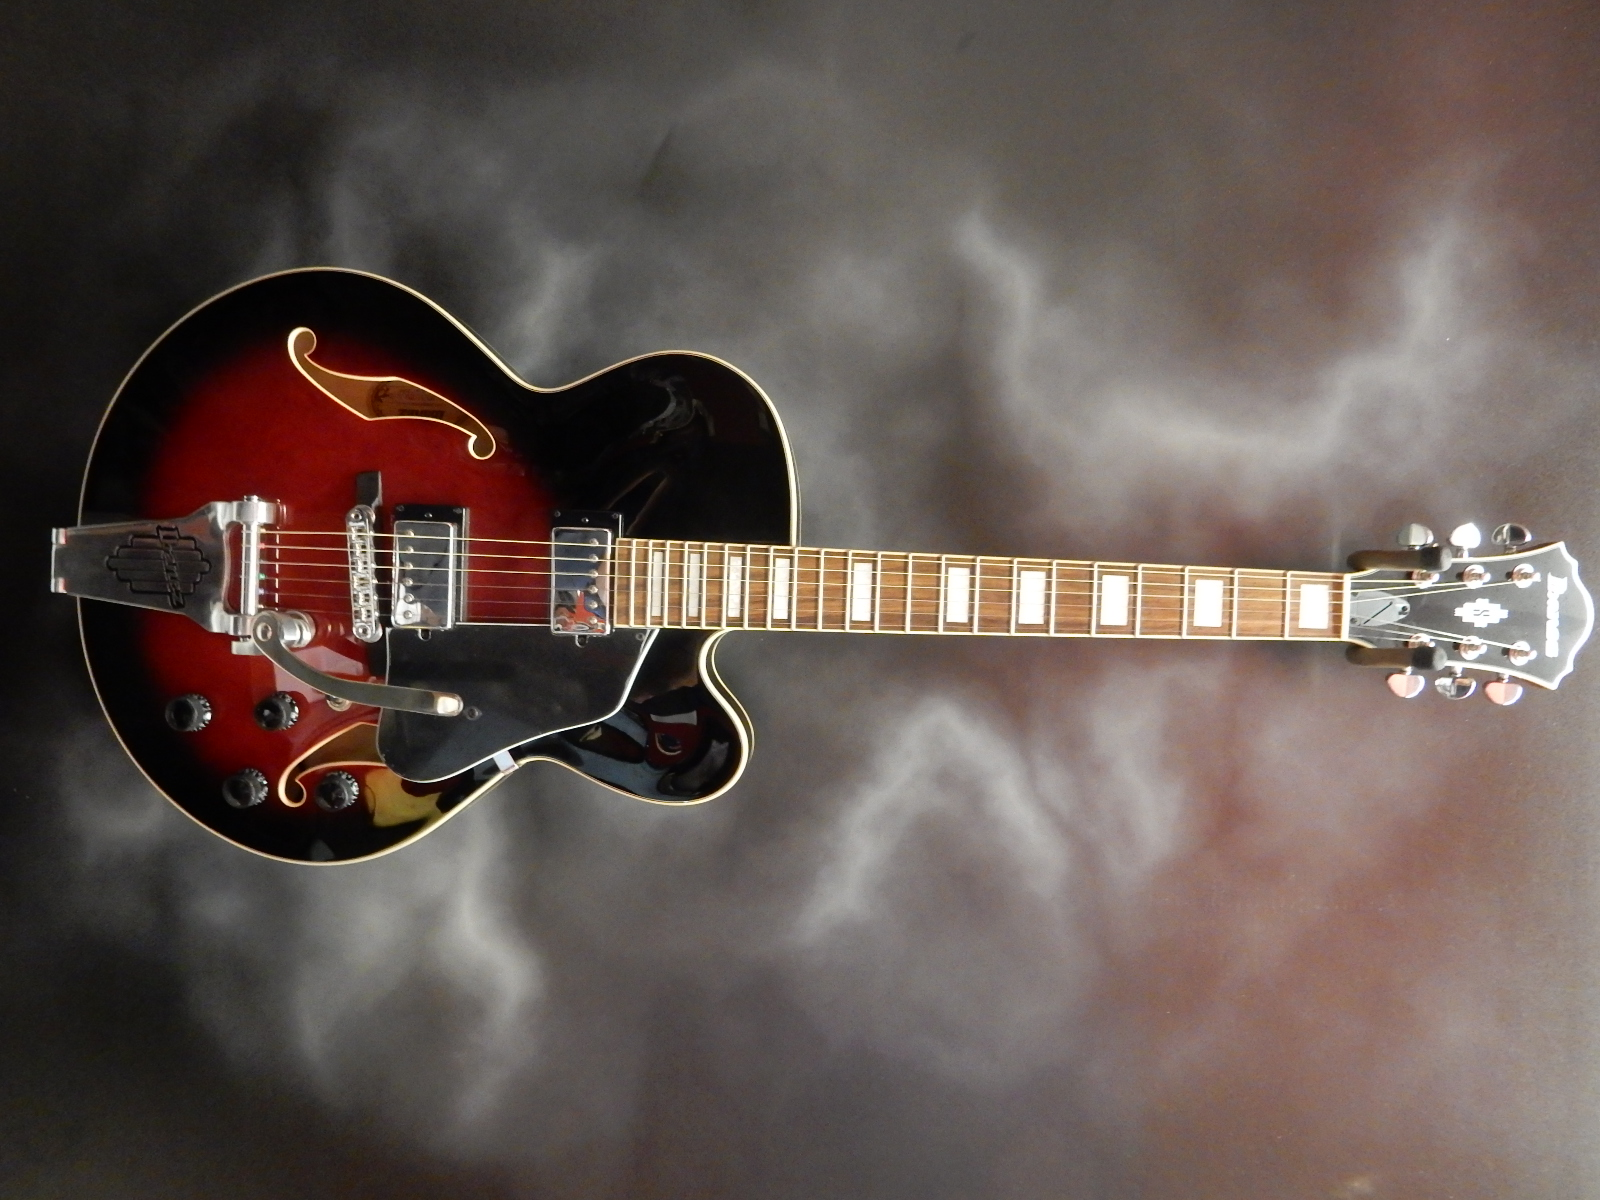 Ibanez - AFS75T Artcore Hollowbody Guitar